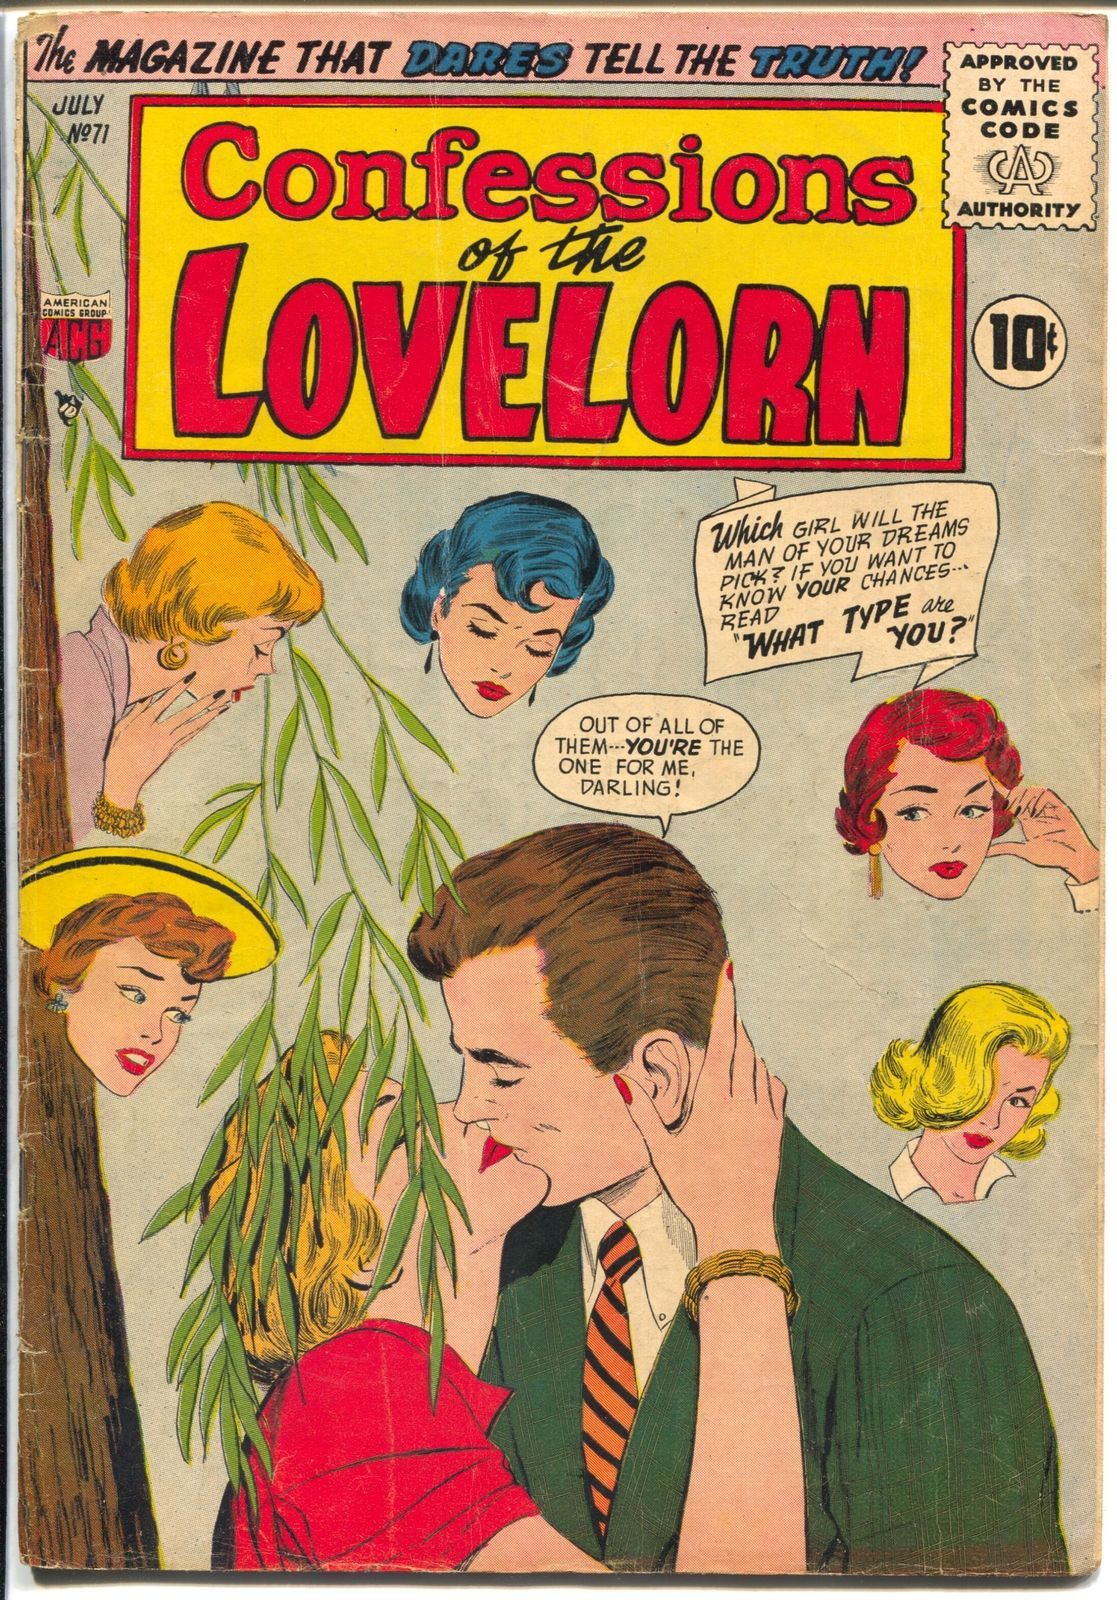 Confessions of The Lovelorn #71 1956-ACG- romance-spicy stories-Rare-VG+